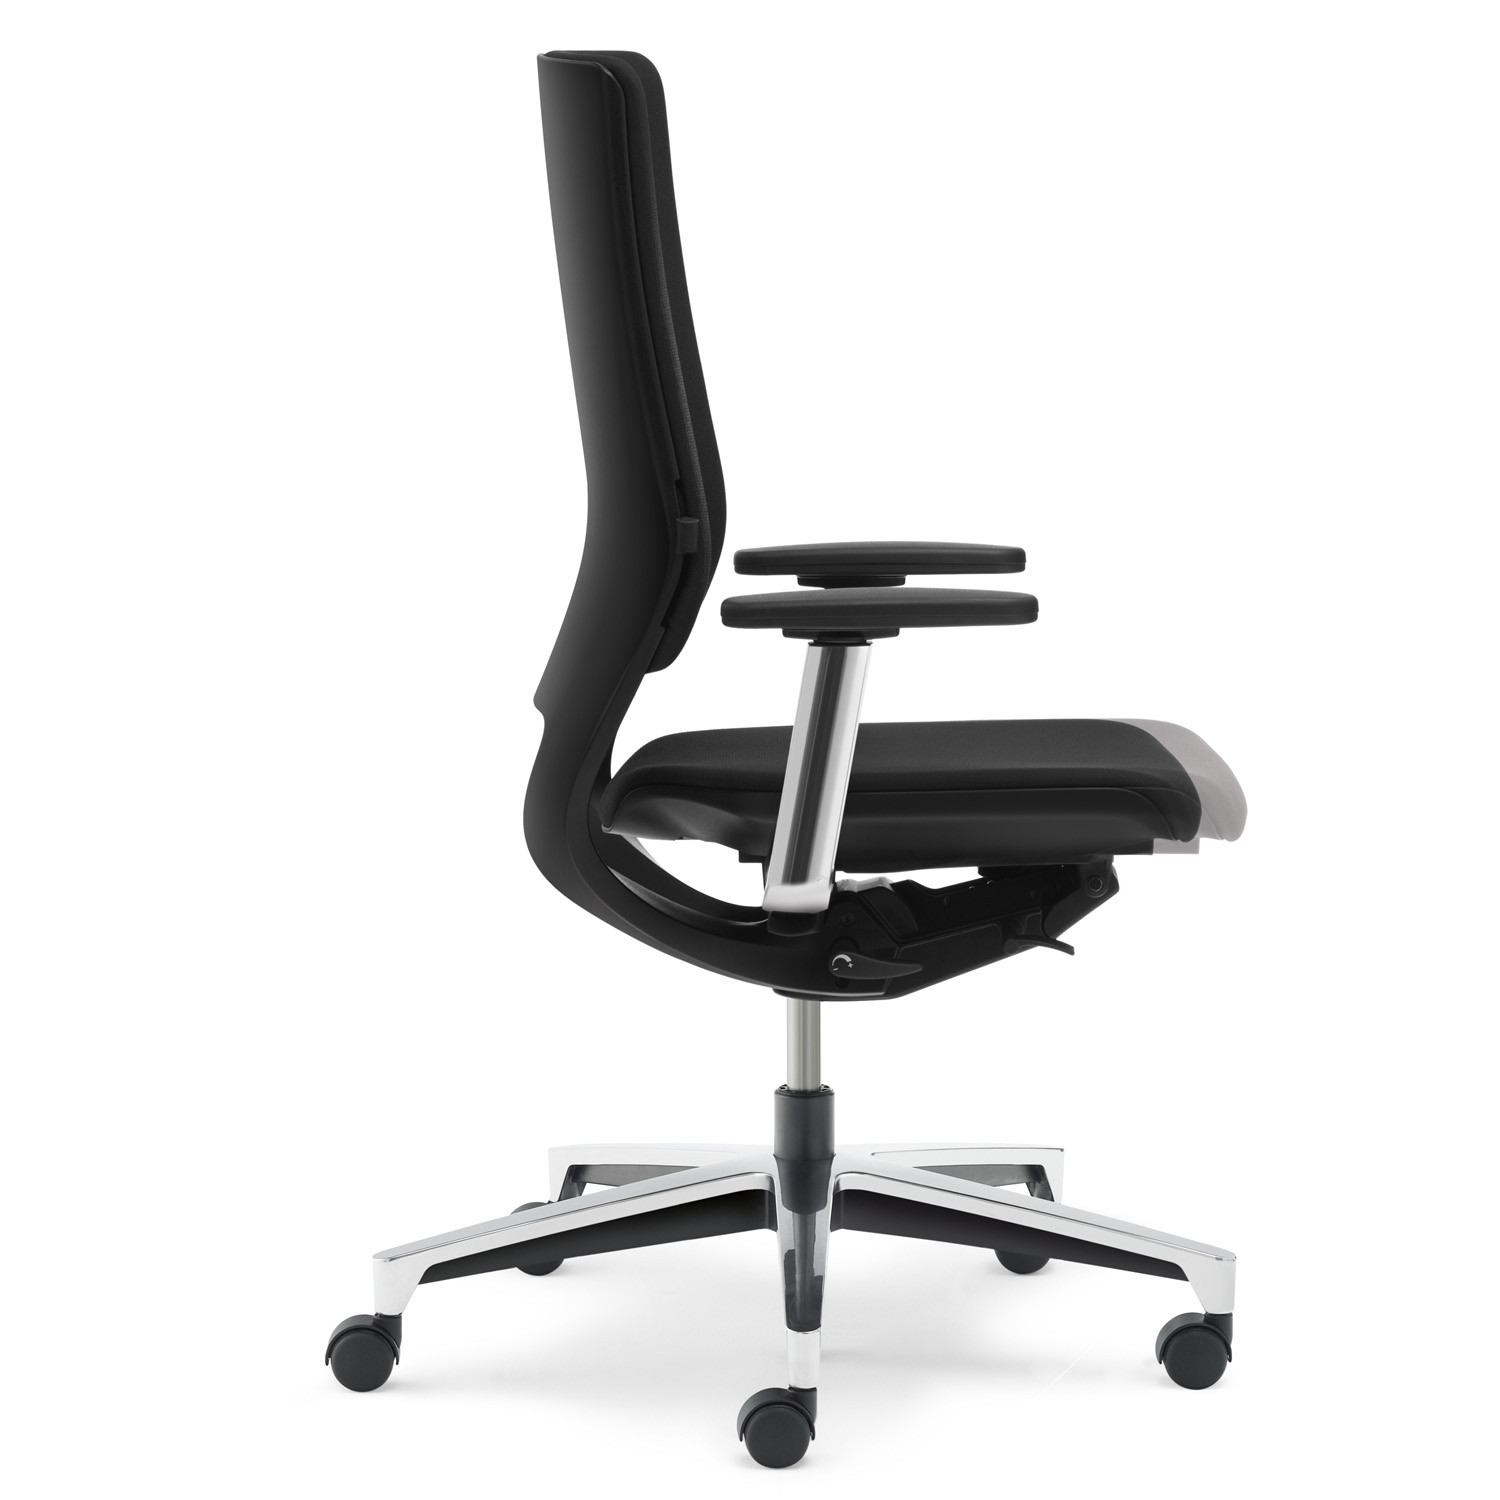 Mera Office Task Swivel Chairs from Klober